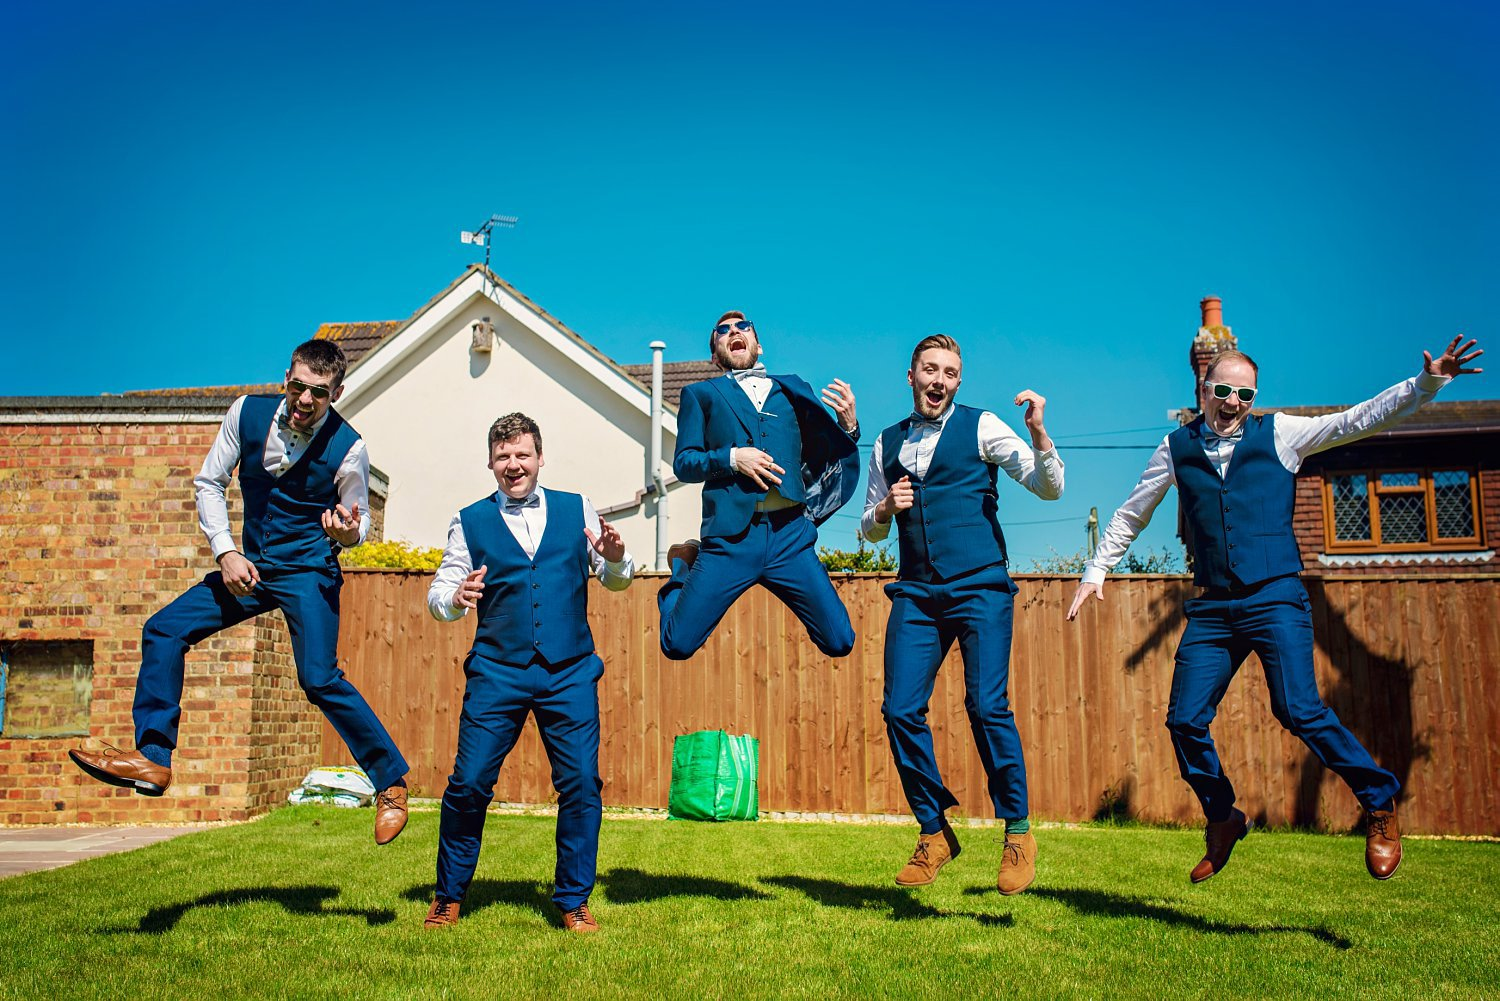 group photo of the groom and his groomsmen. they are all jumping except one groomsman